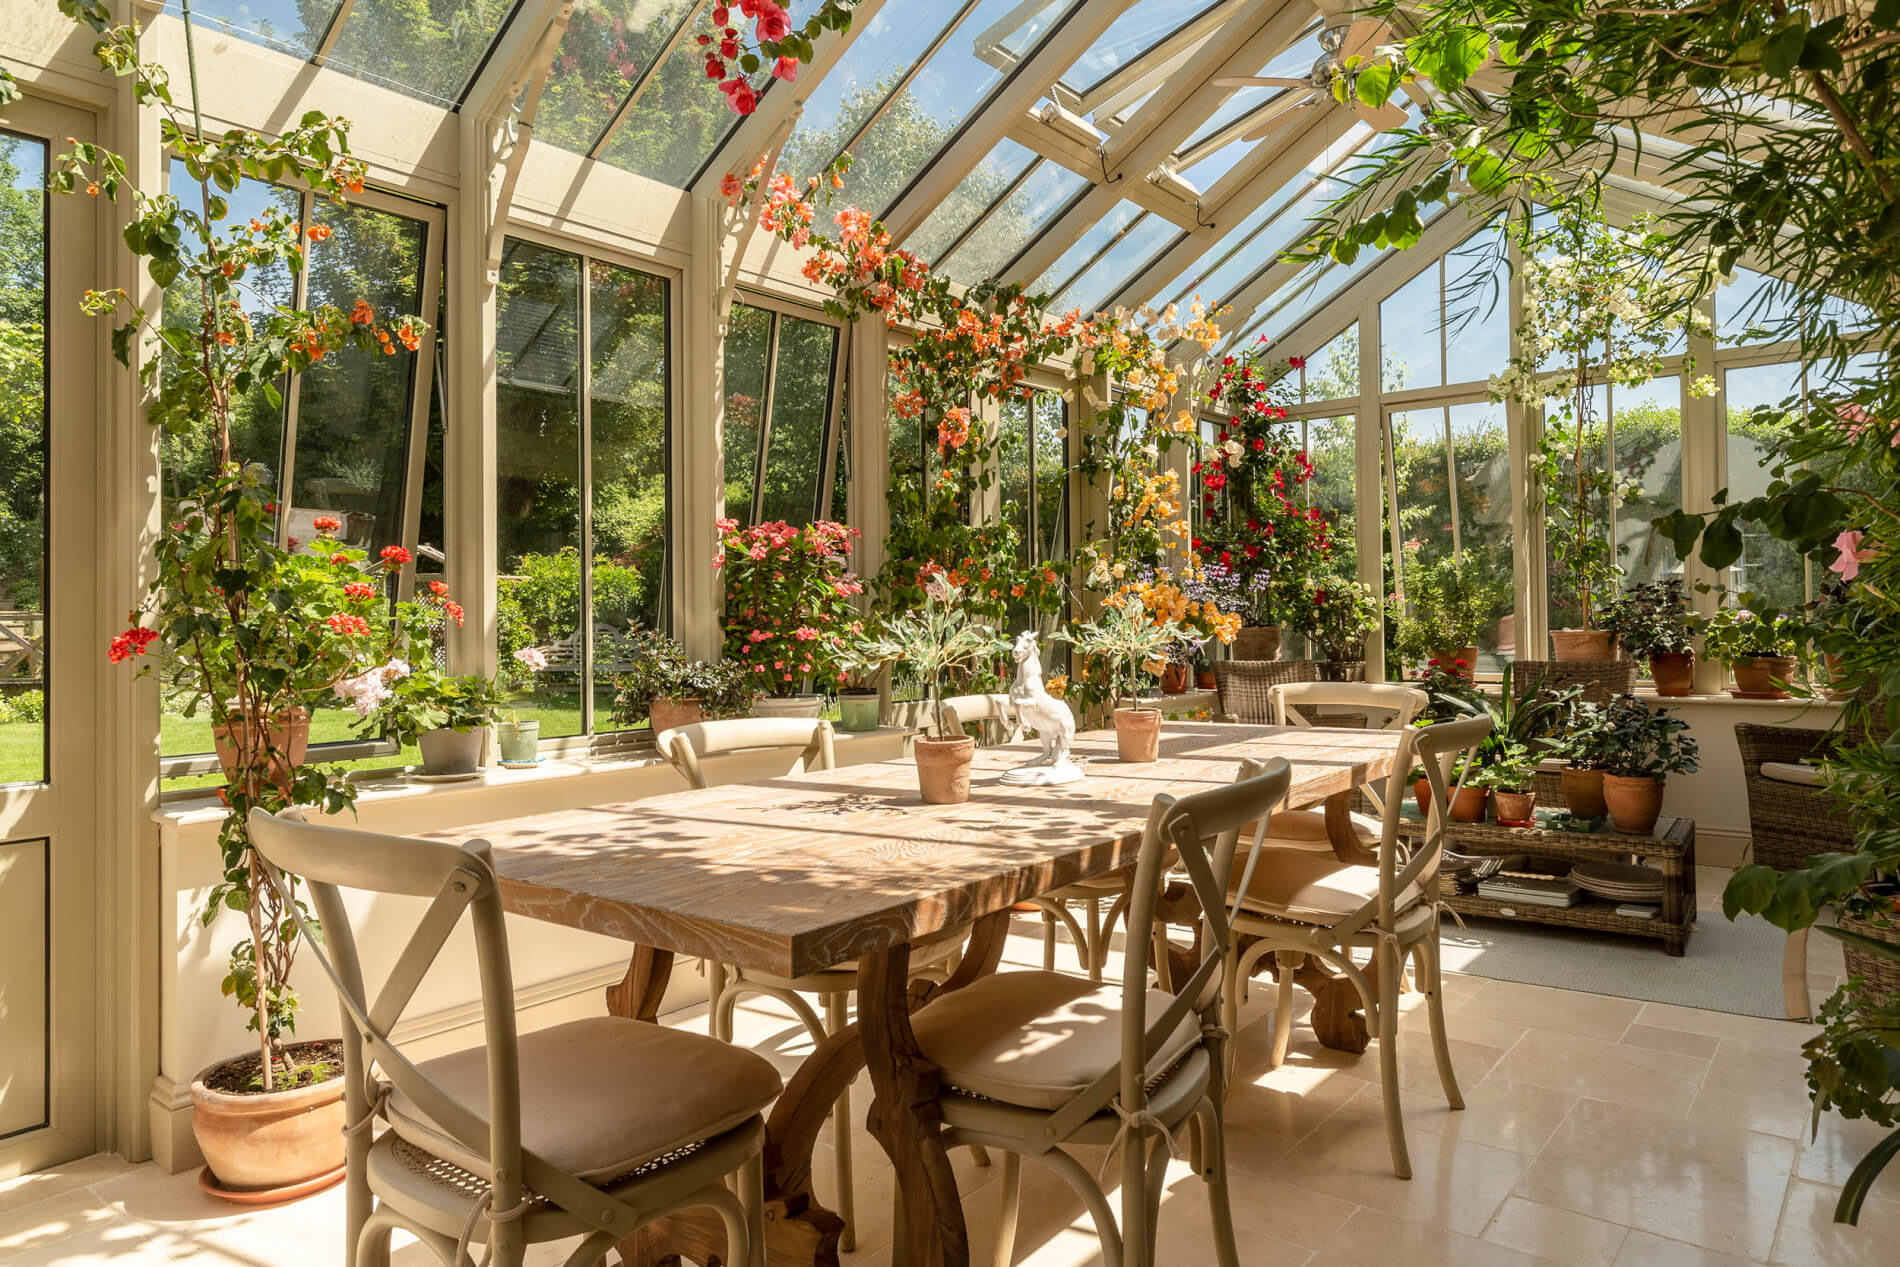 Conservatory Accessory Ideas - Plants